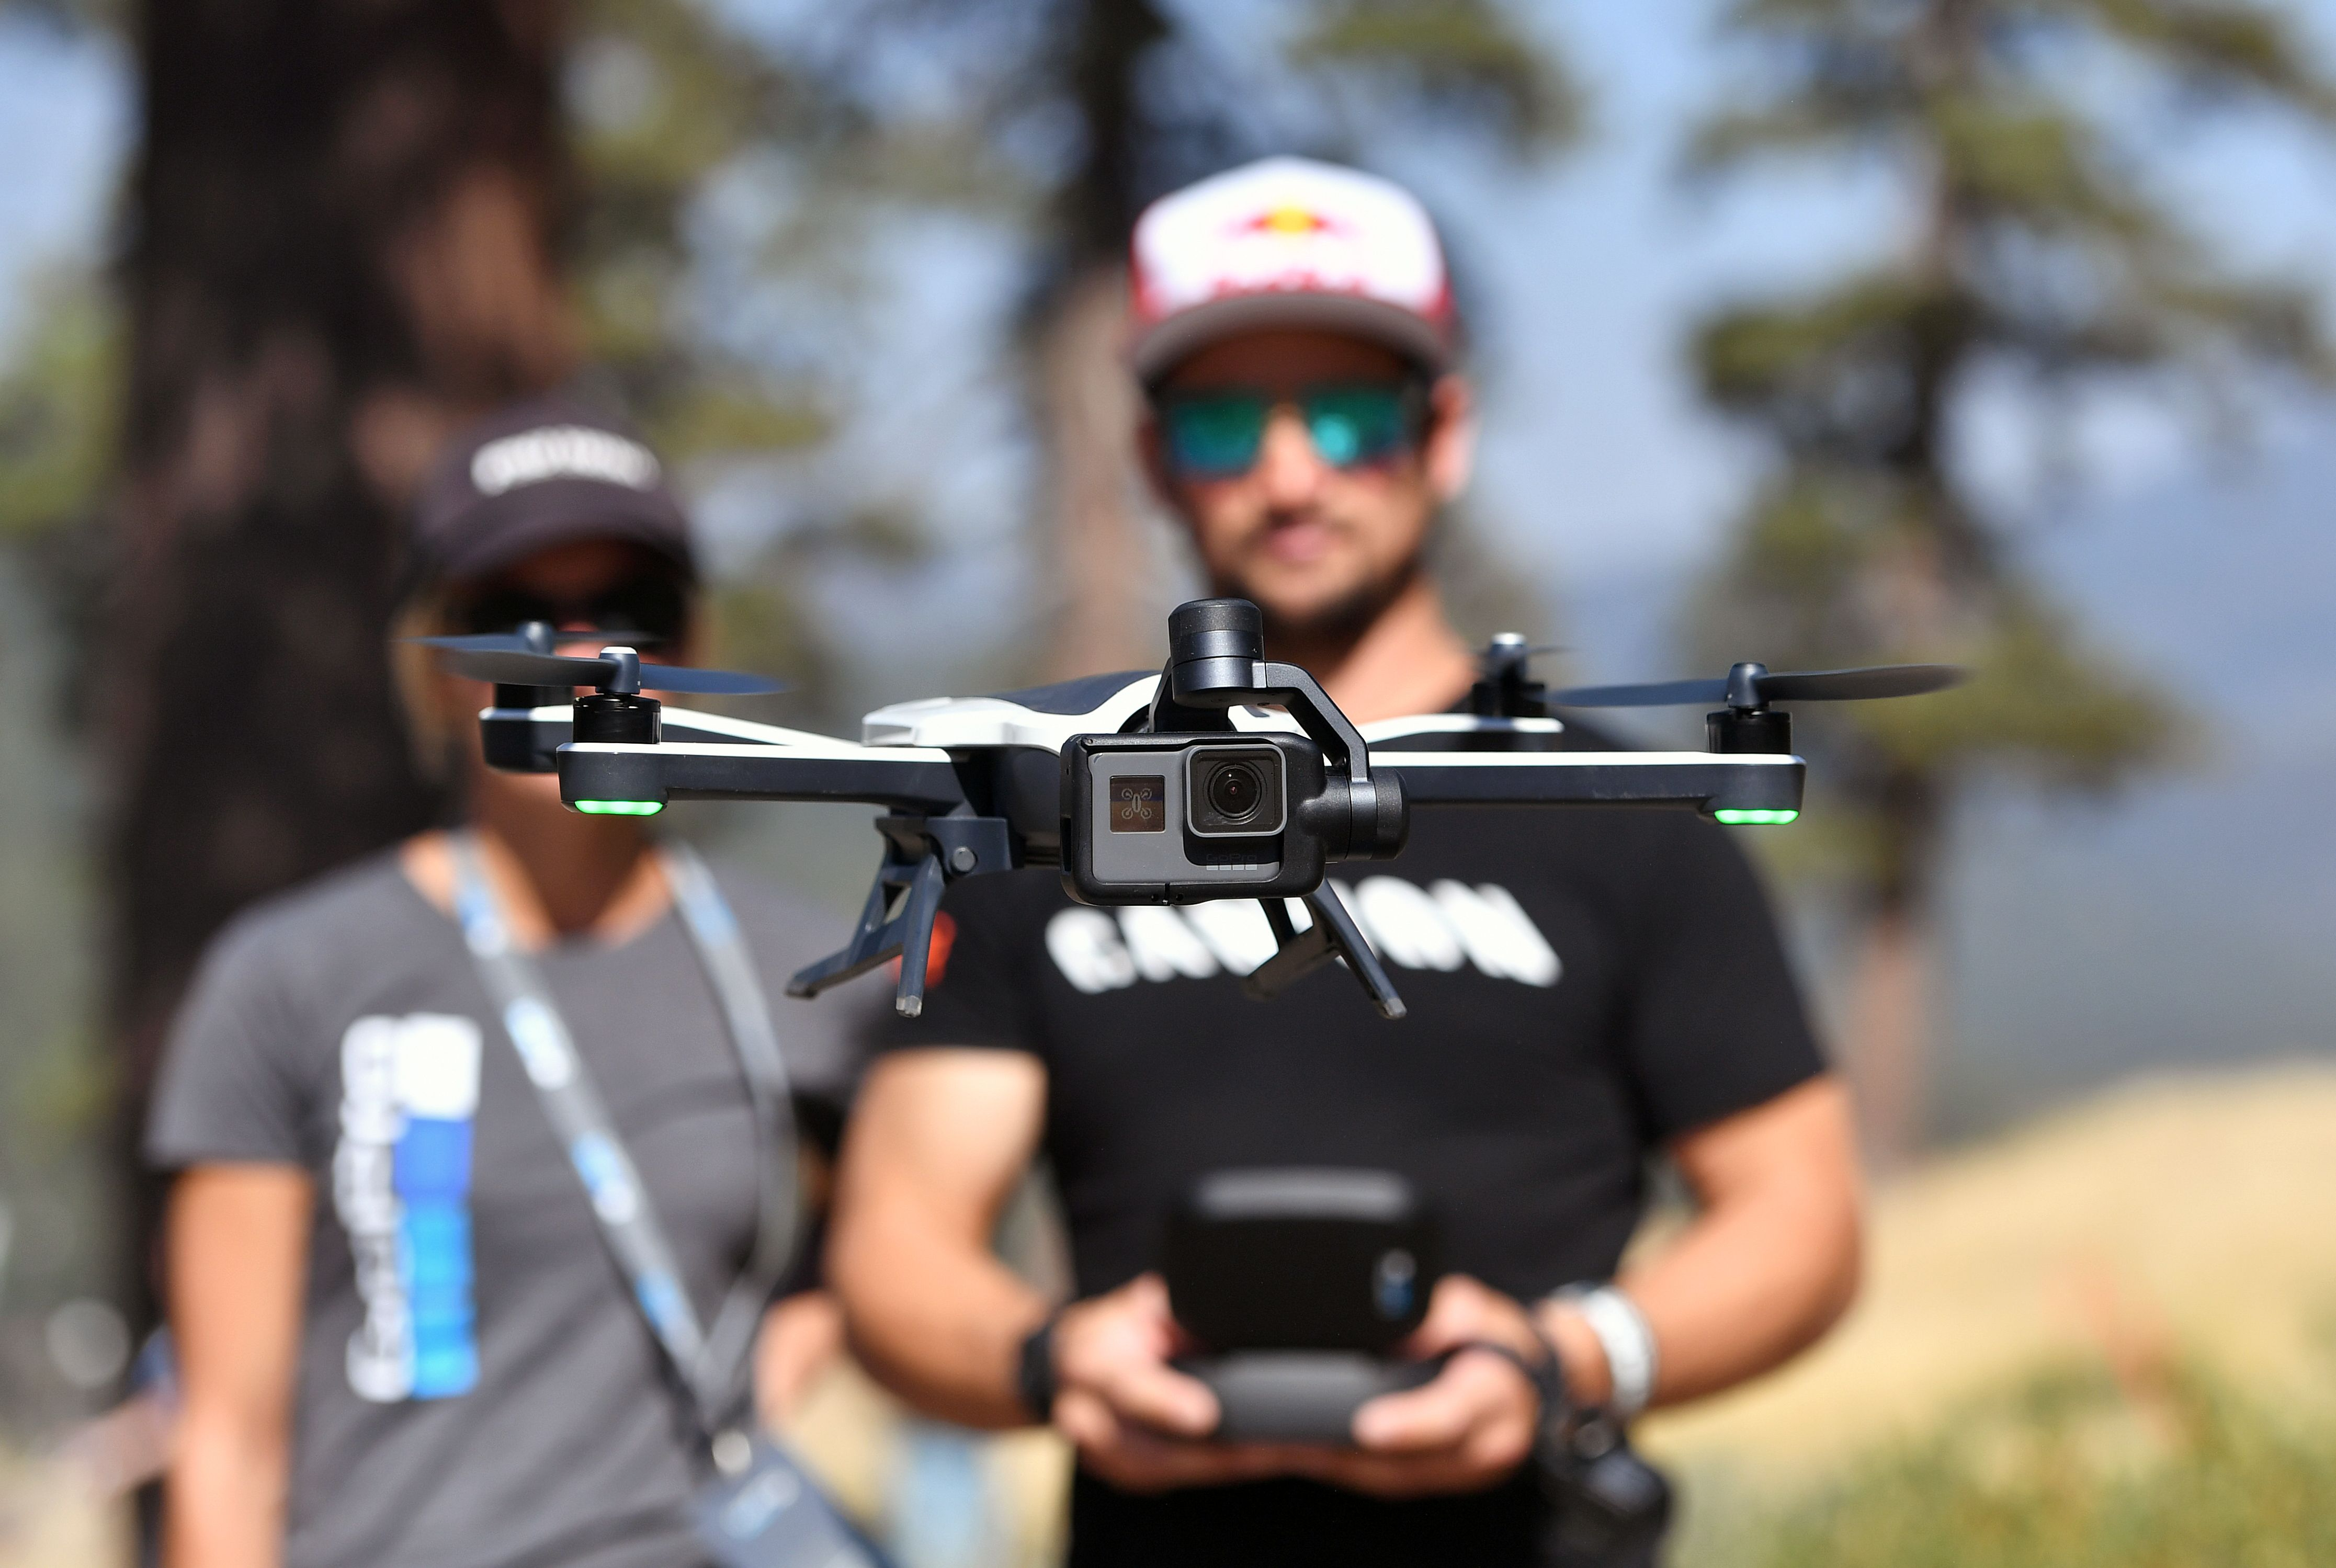 7 steps every beginner drone pilot should take to become a pro